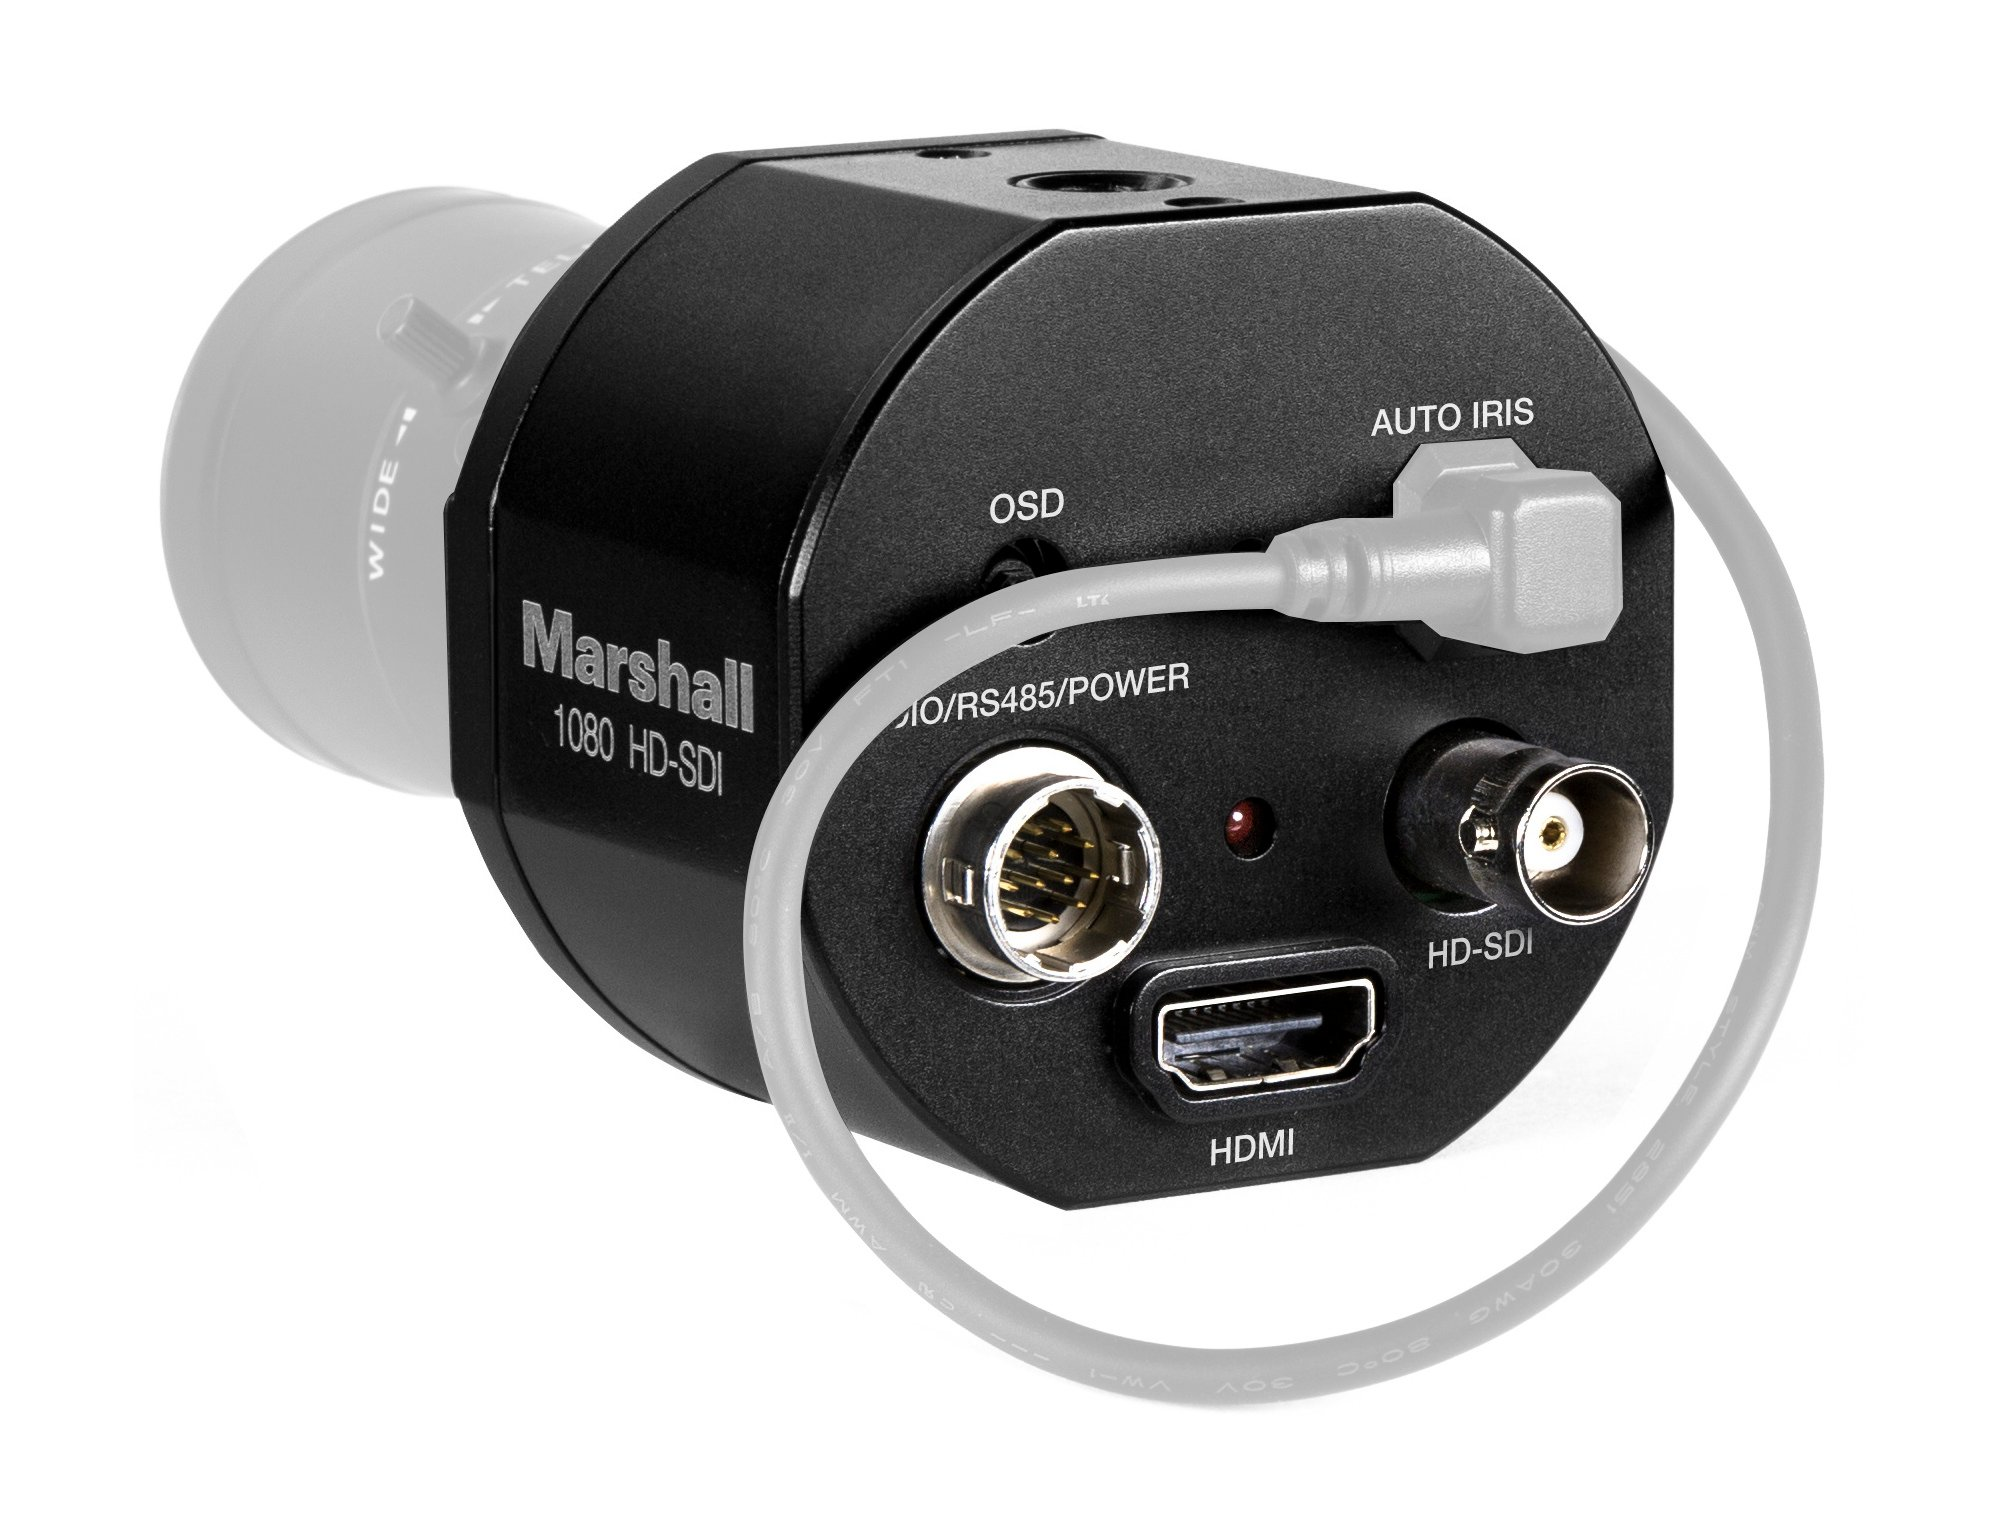 Compact 2Mp Full HD (3G/HD-SDI) Video Camera with HDMI Out